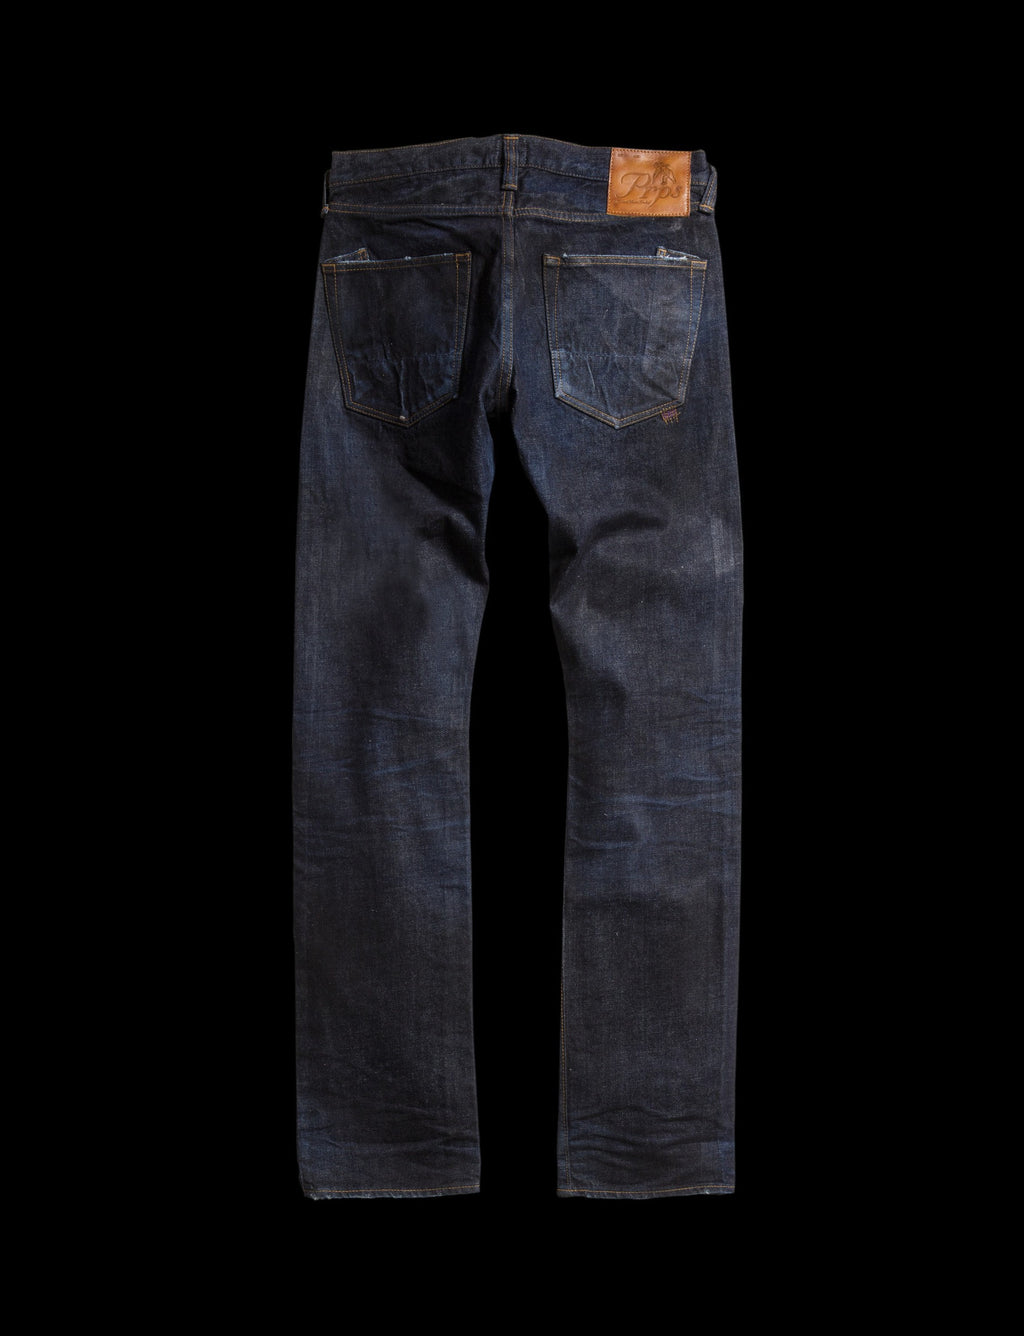 Prps - Barracuda - Fluid - Jeans - Prps